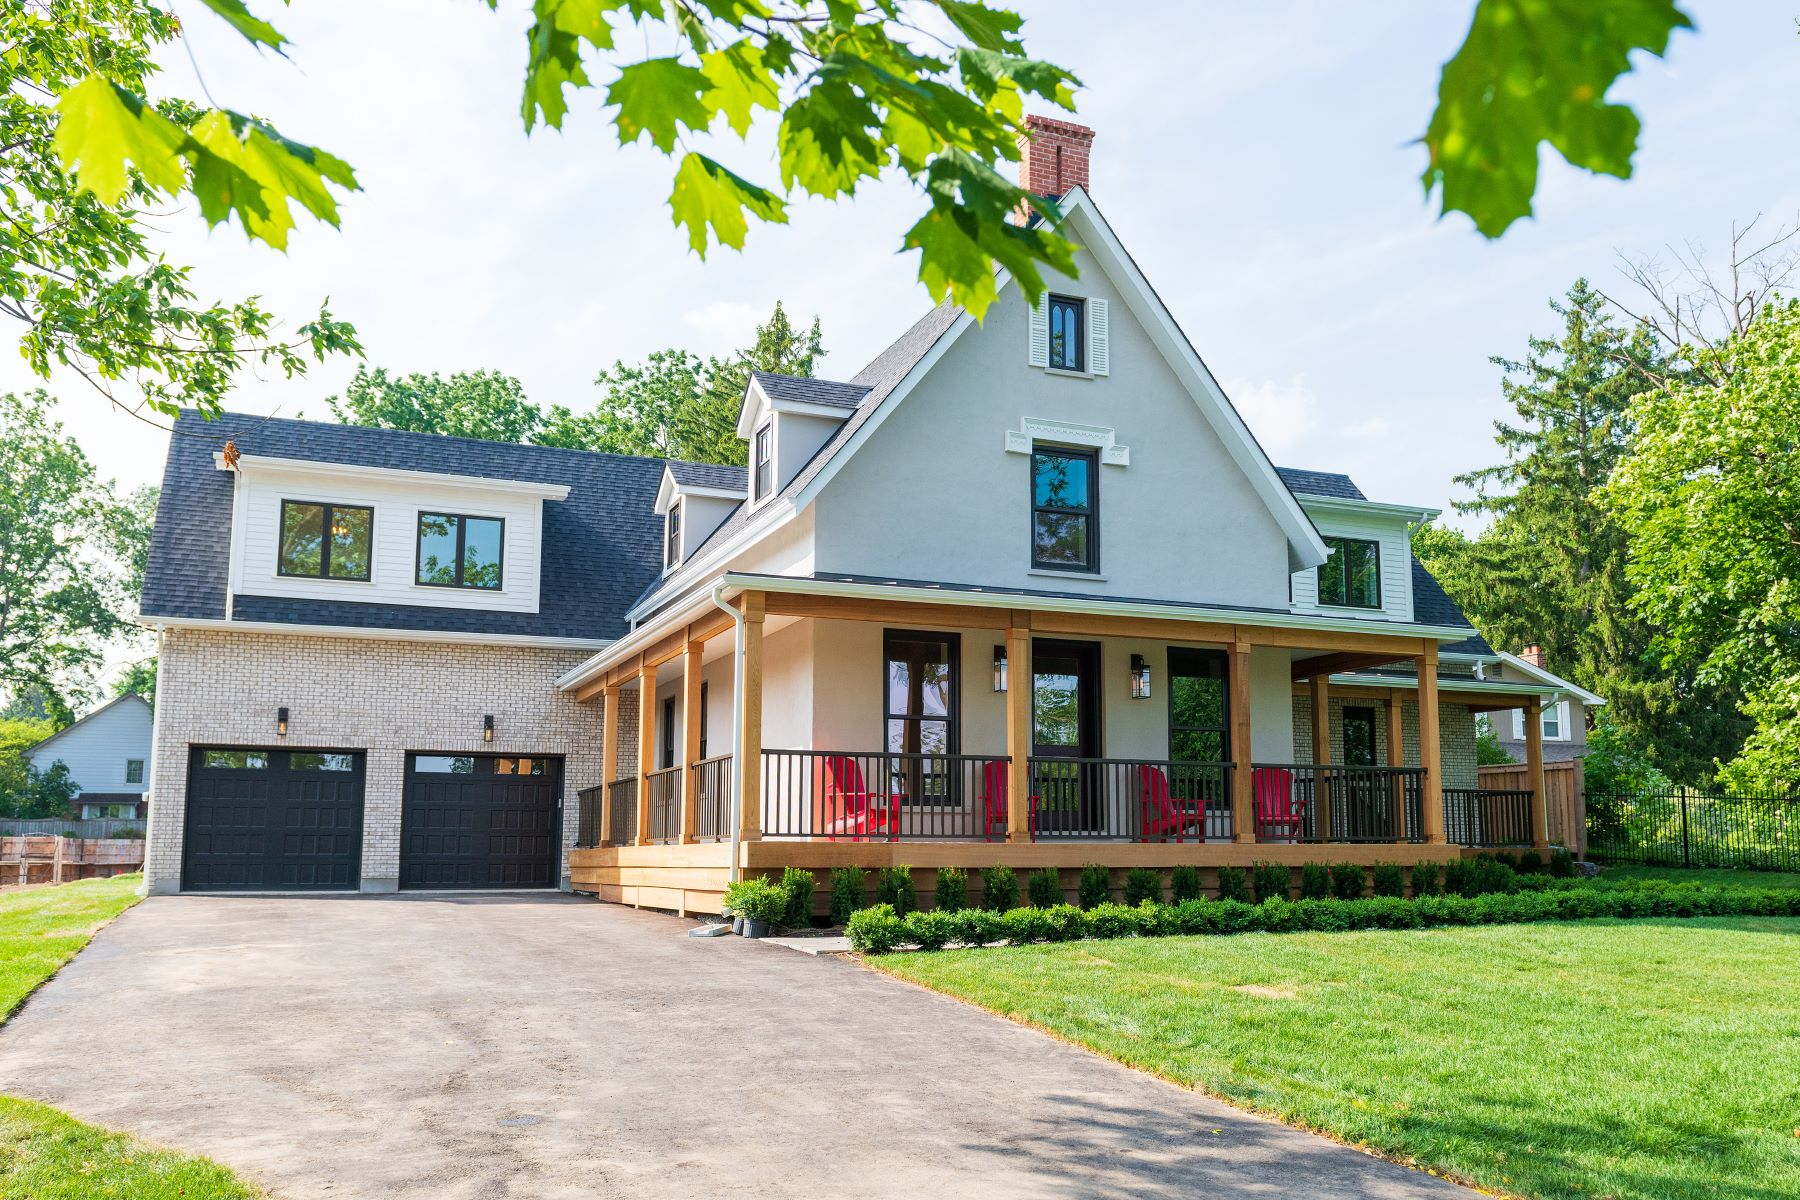 Single Family Homes for Sale at Spectacular Modern Farmhouse 489 Lakeshore Road West Oakville, Ontario L6K 1G5 Canada